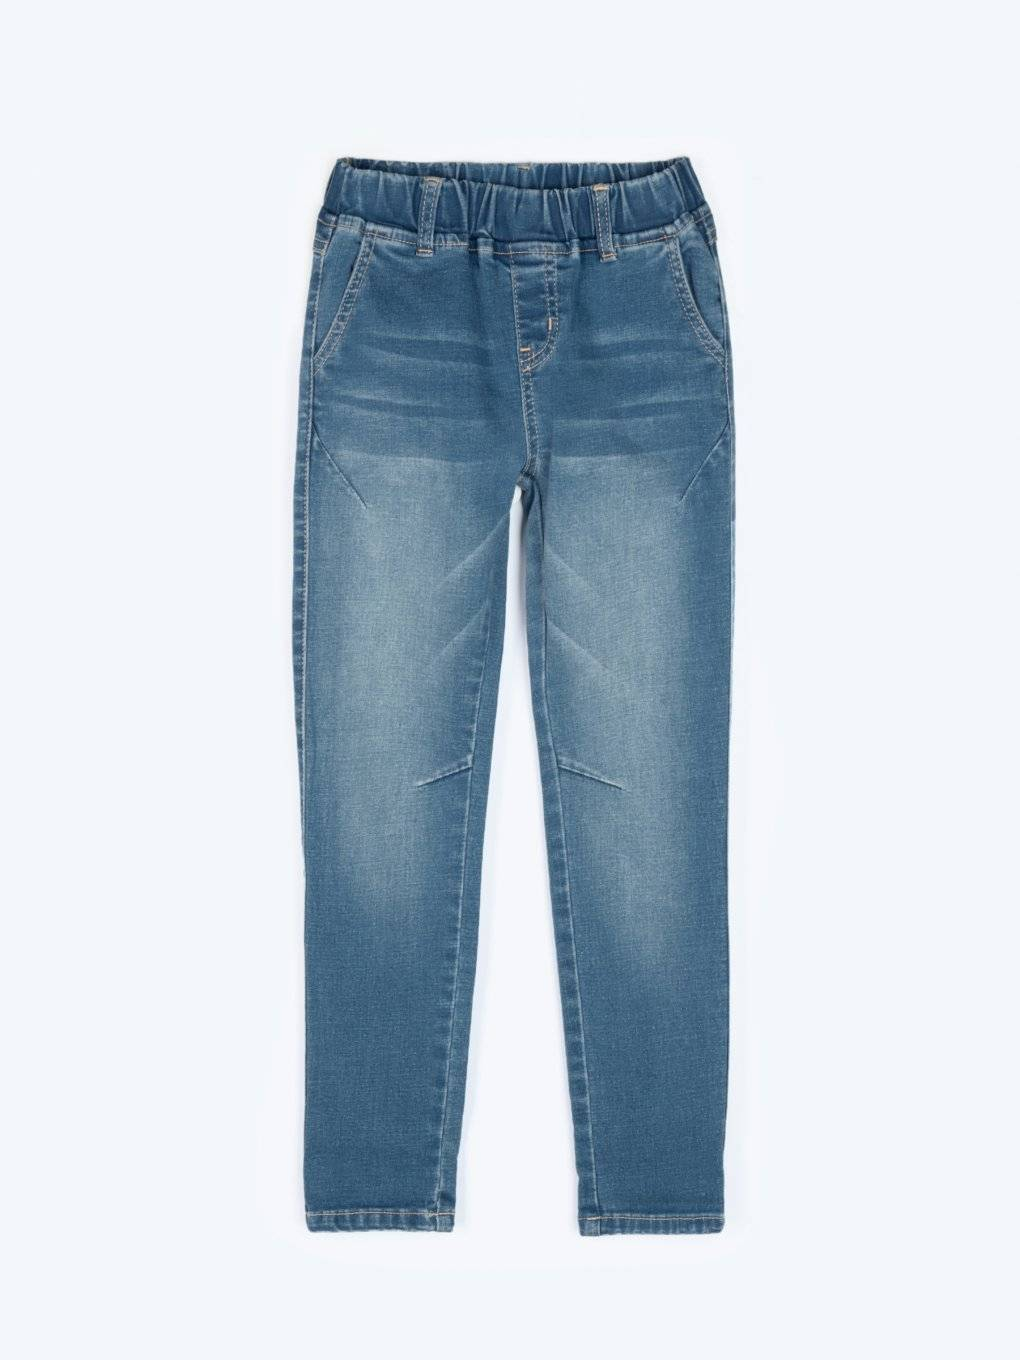 Comfy jeans with elastic waistband